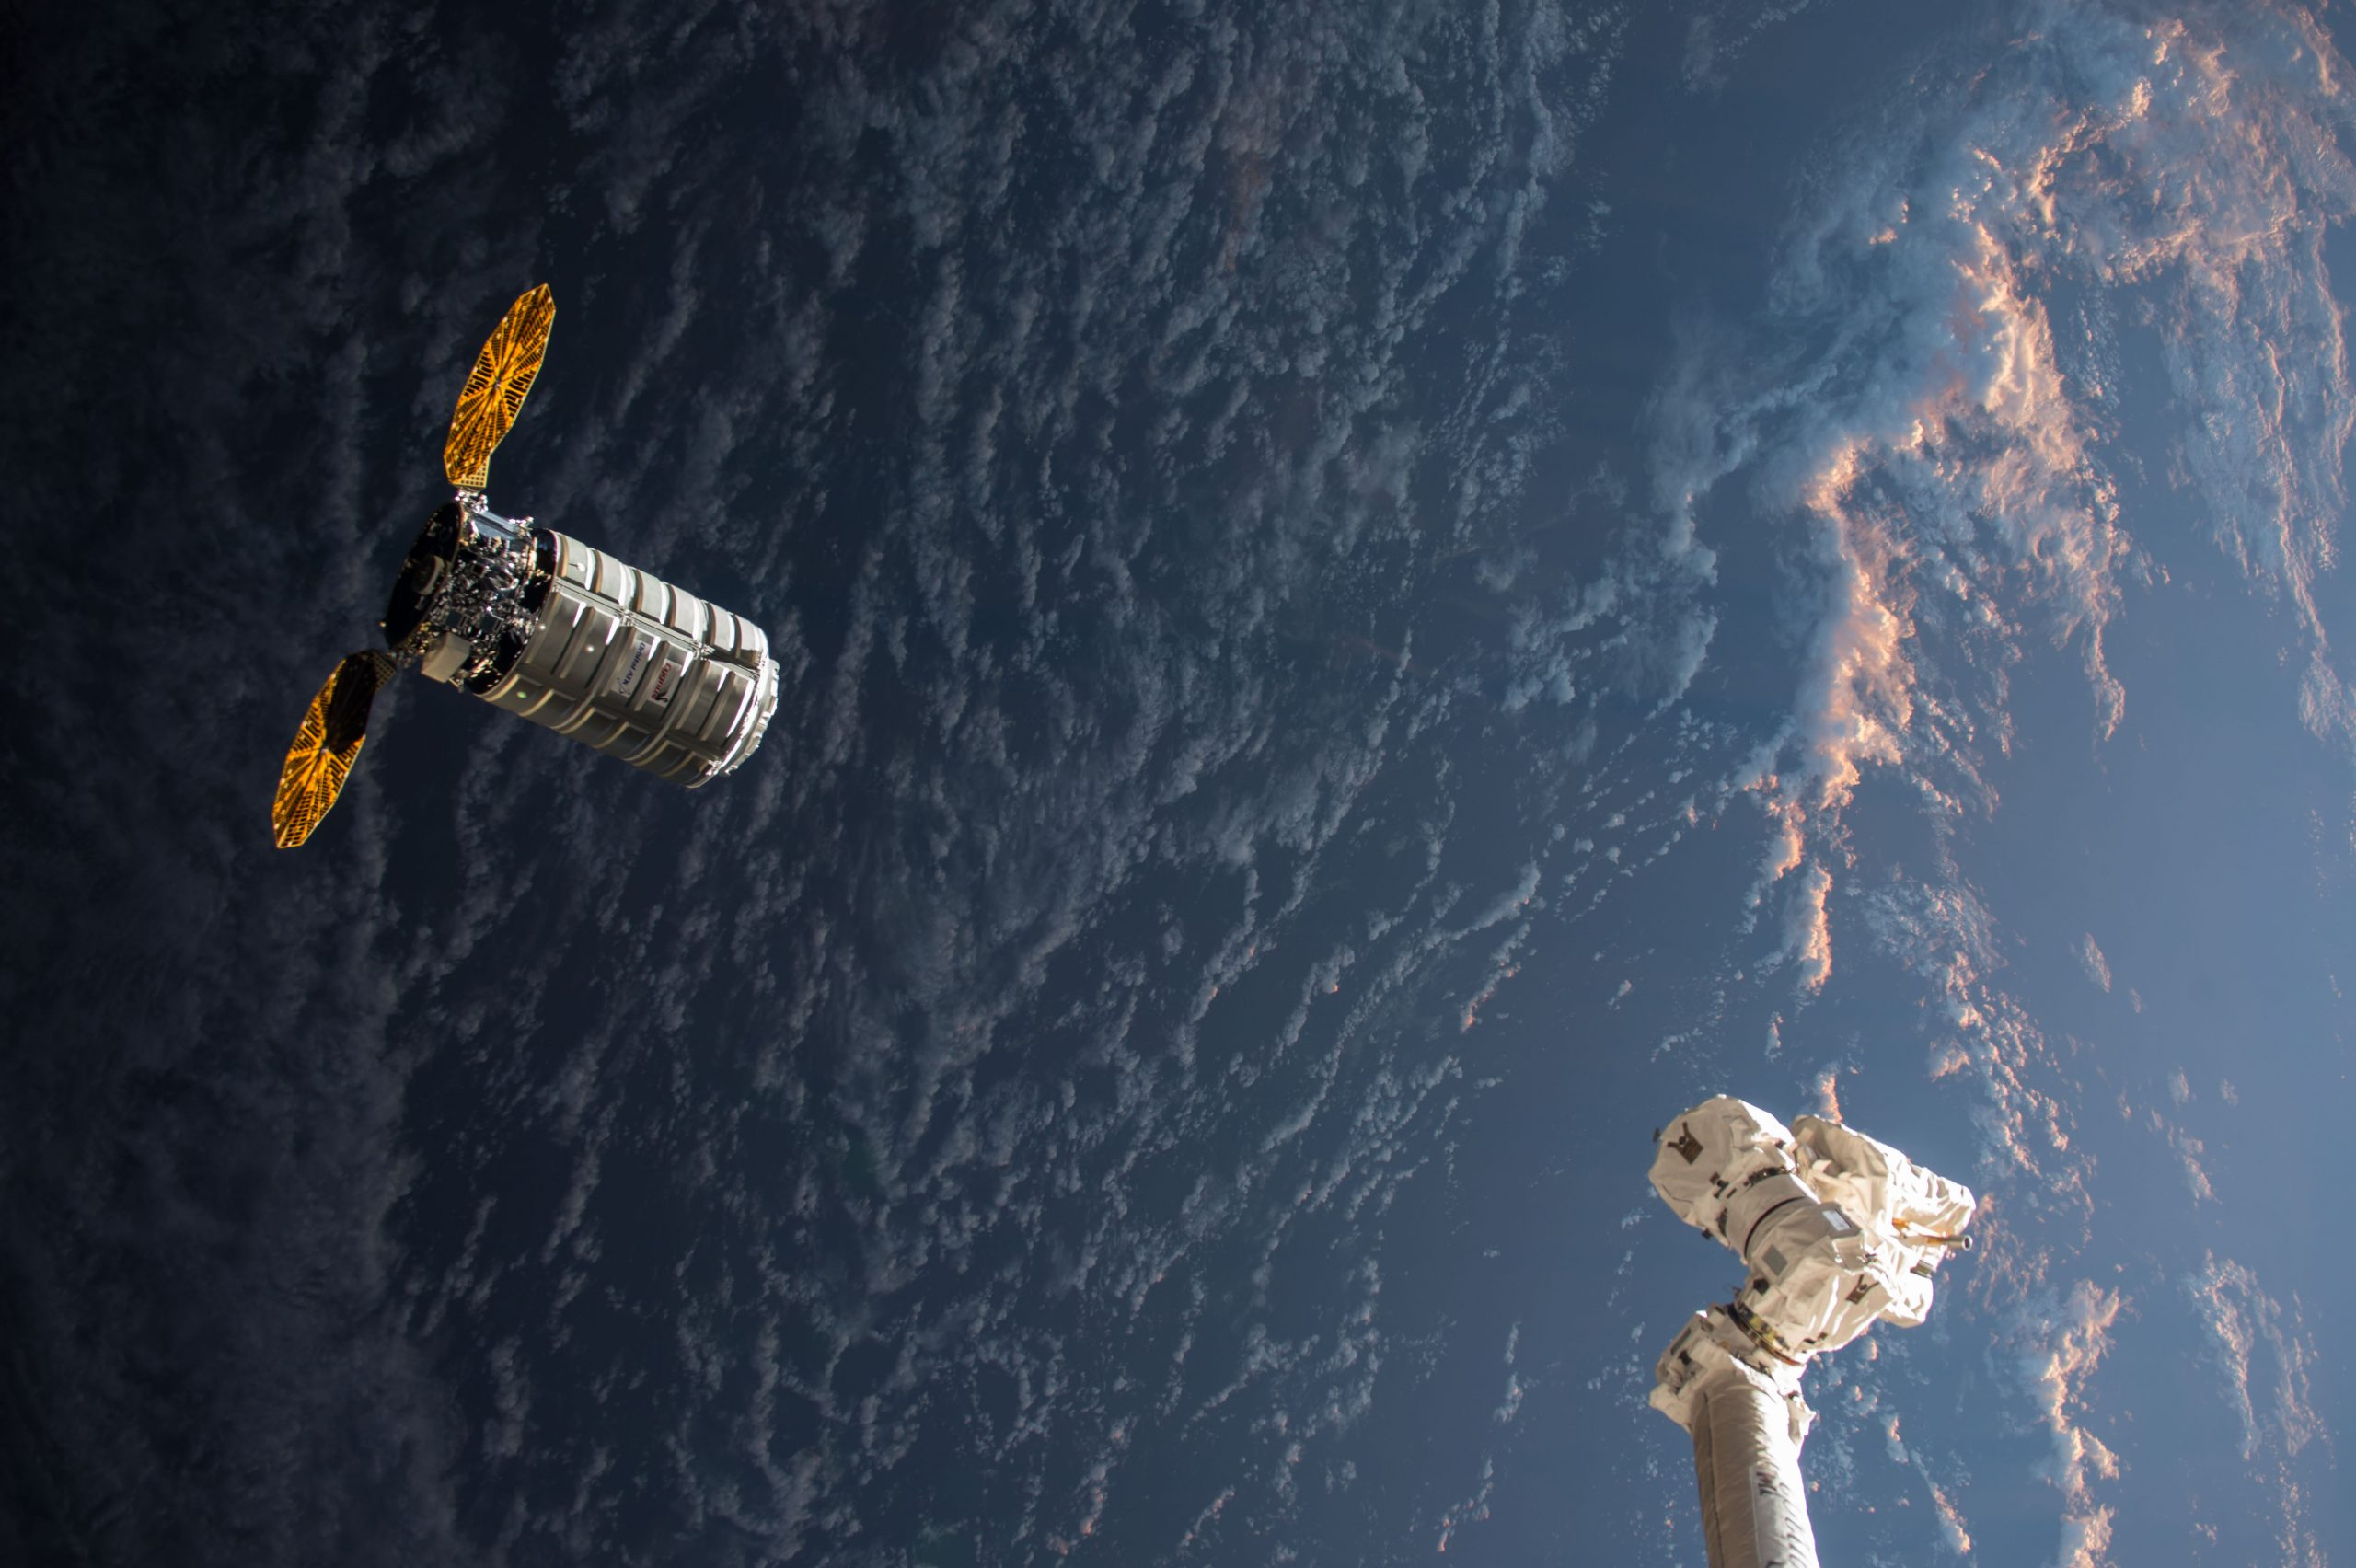 The Cygnus resupply ship pays a visit to the ISS.